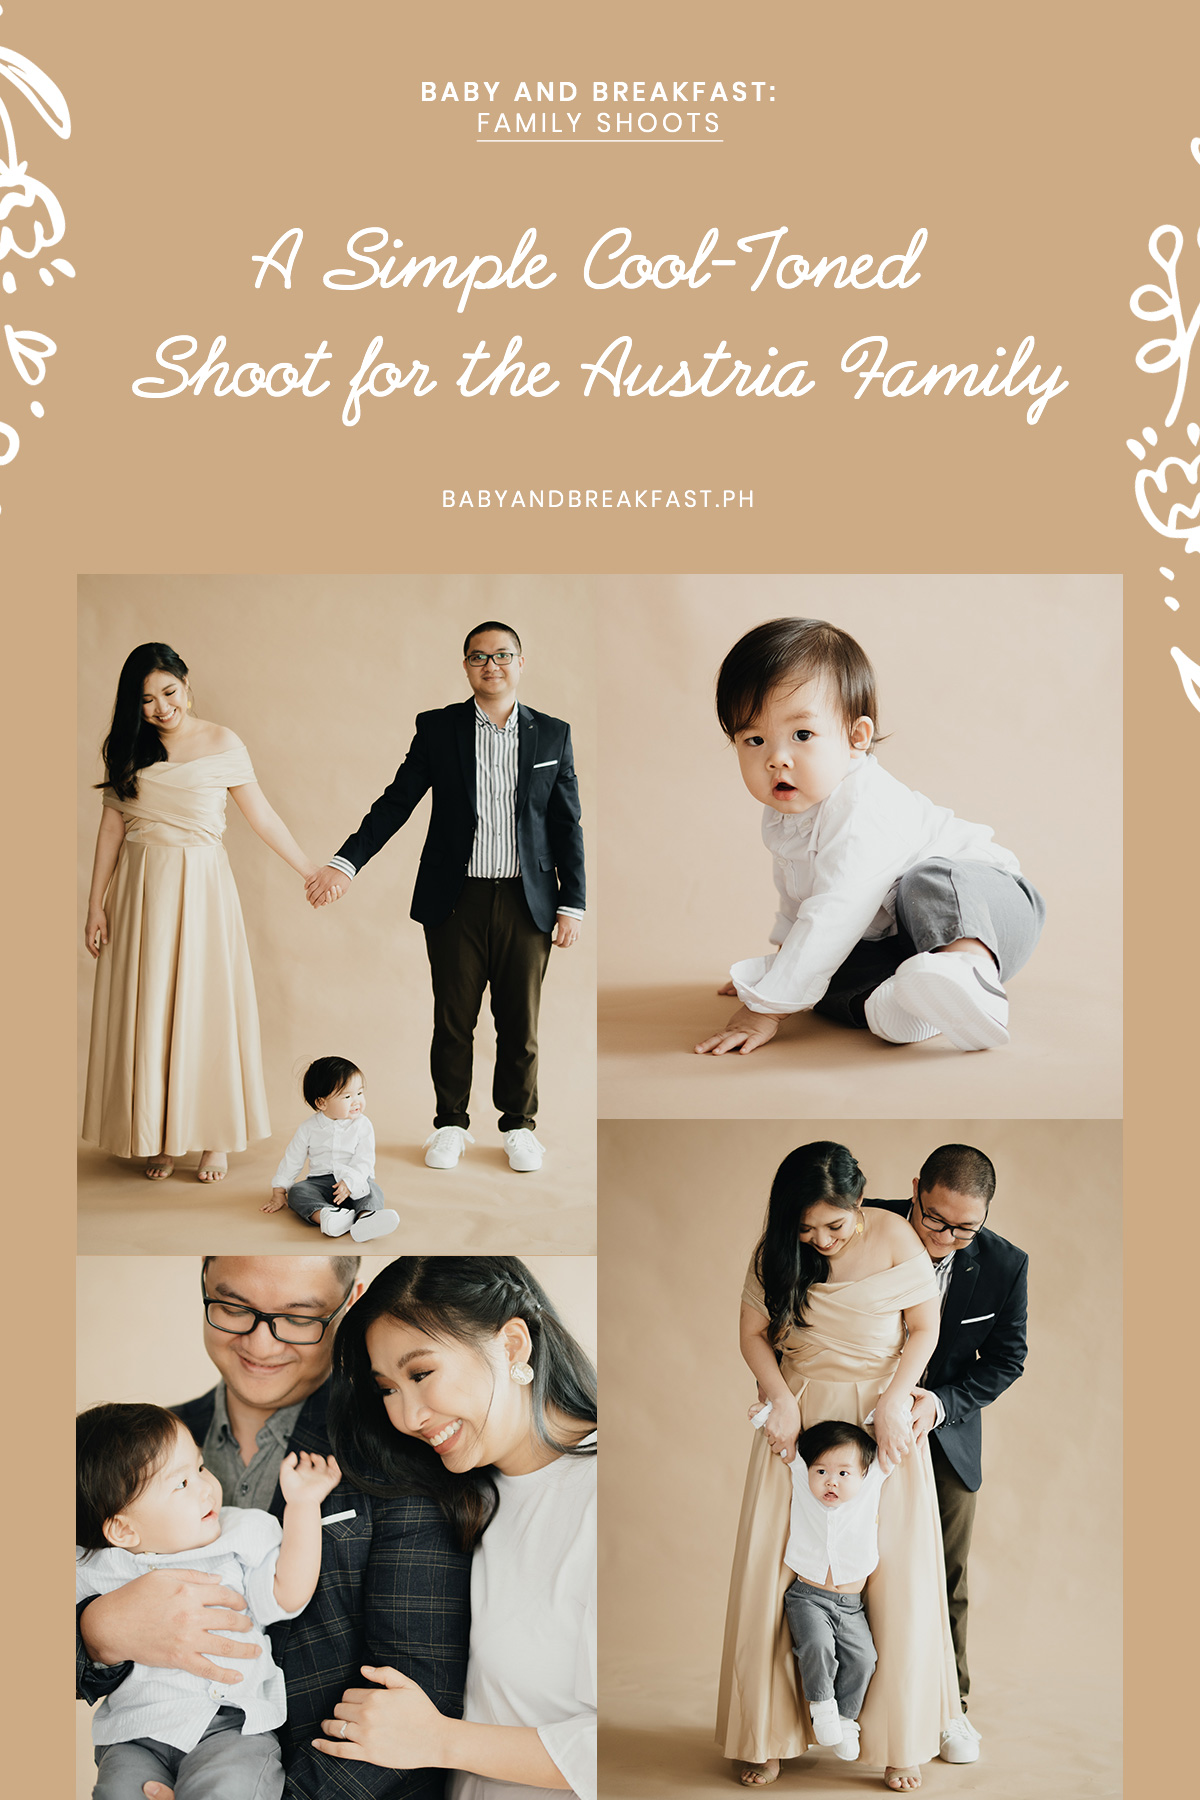 Baby and Breakfast: Family Shoots A Simple Cool-Toned Shoot for the Austria Family